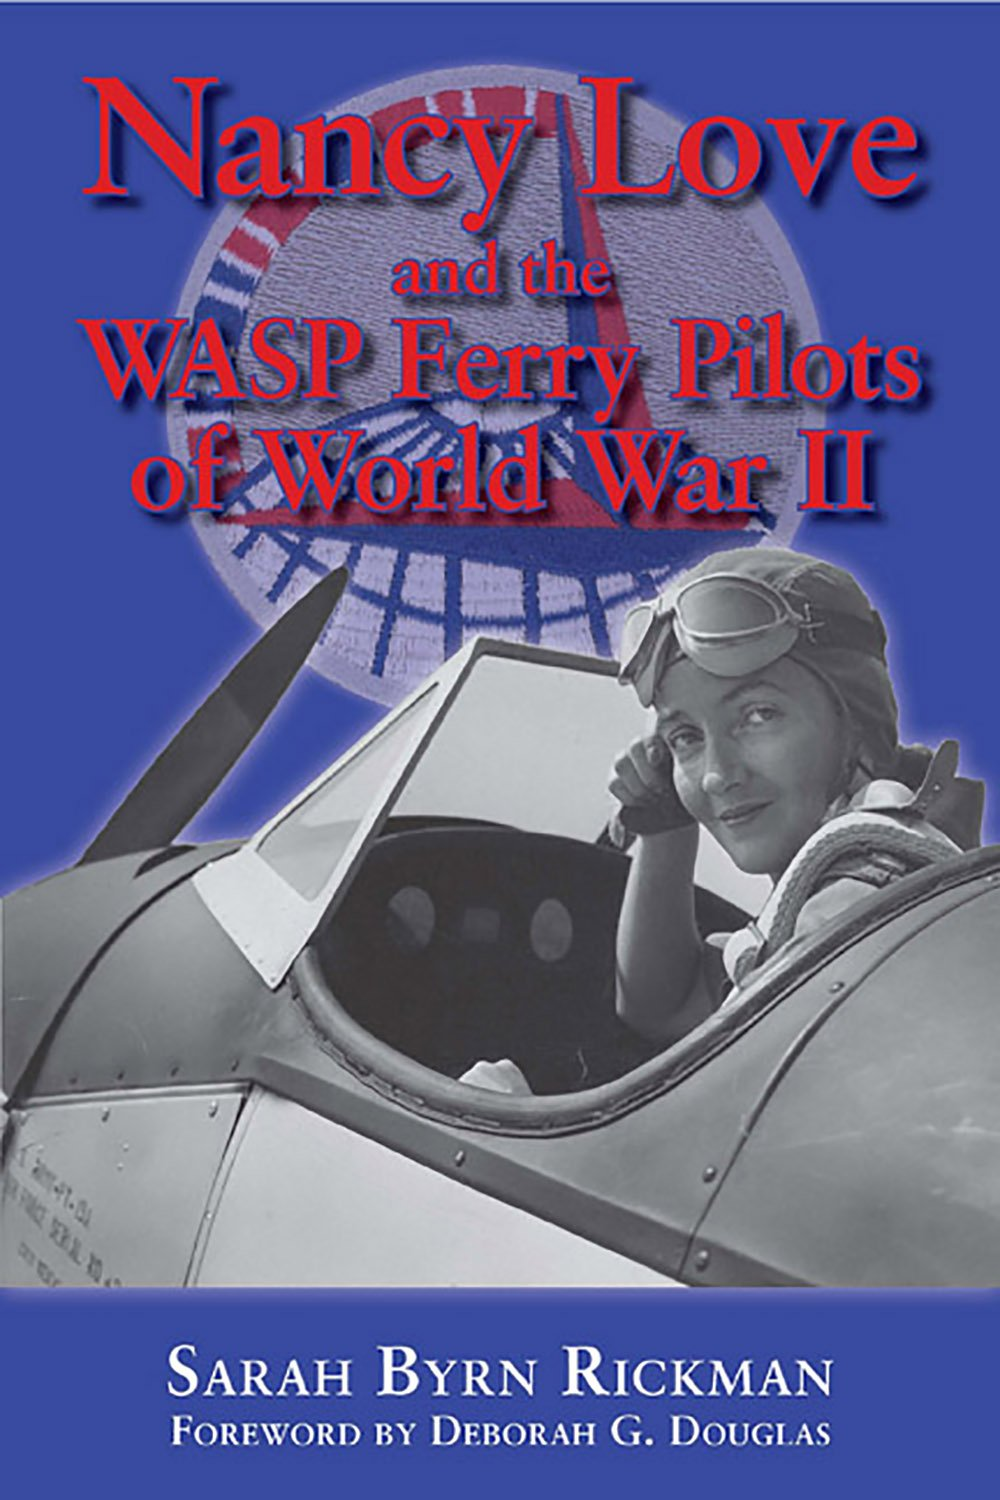 Nancy Love and the WASP Ferry Pilots of World War II (North Texas Military Biography and Memoir Series) PDF